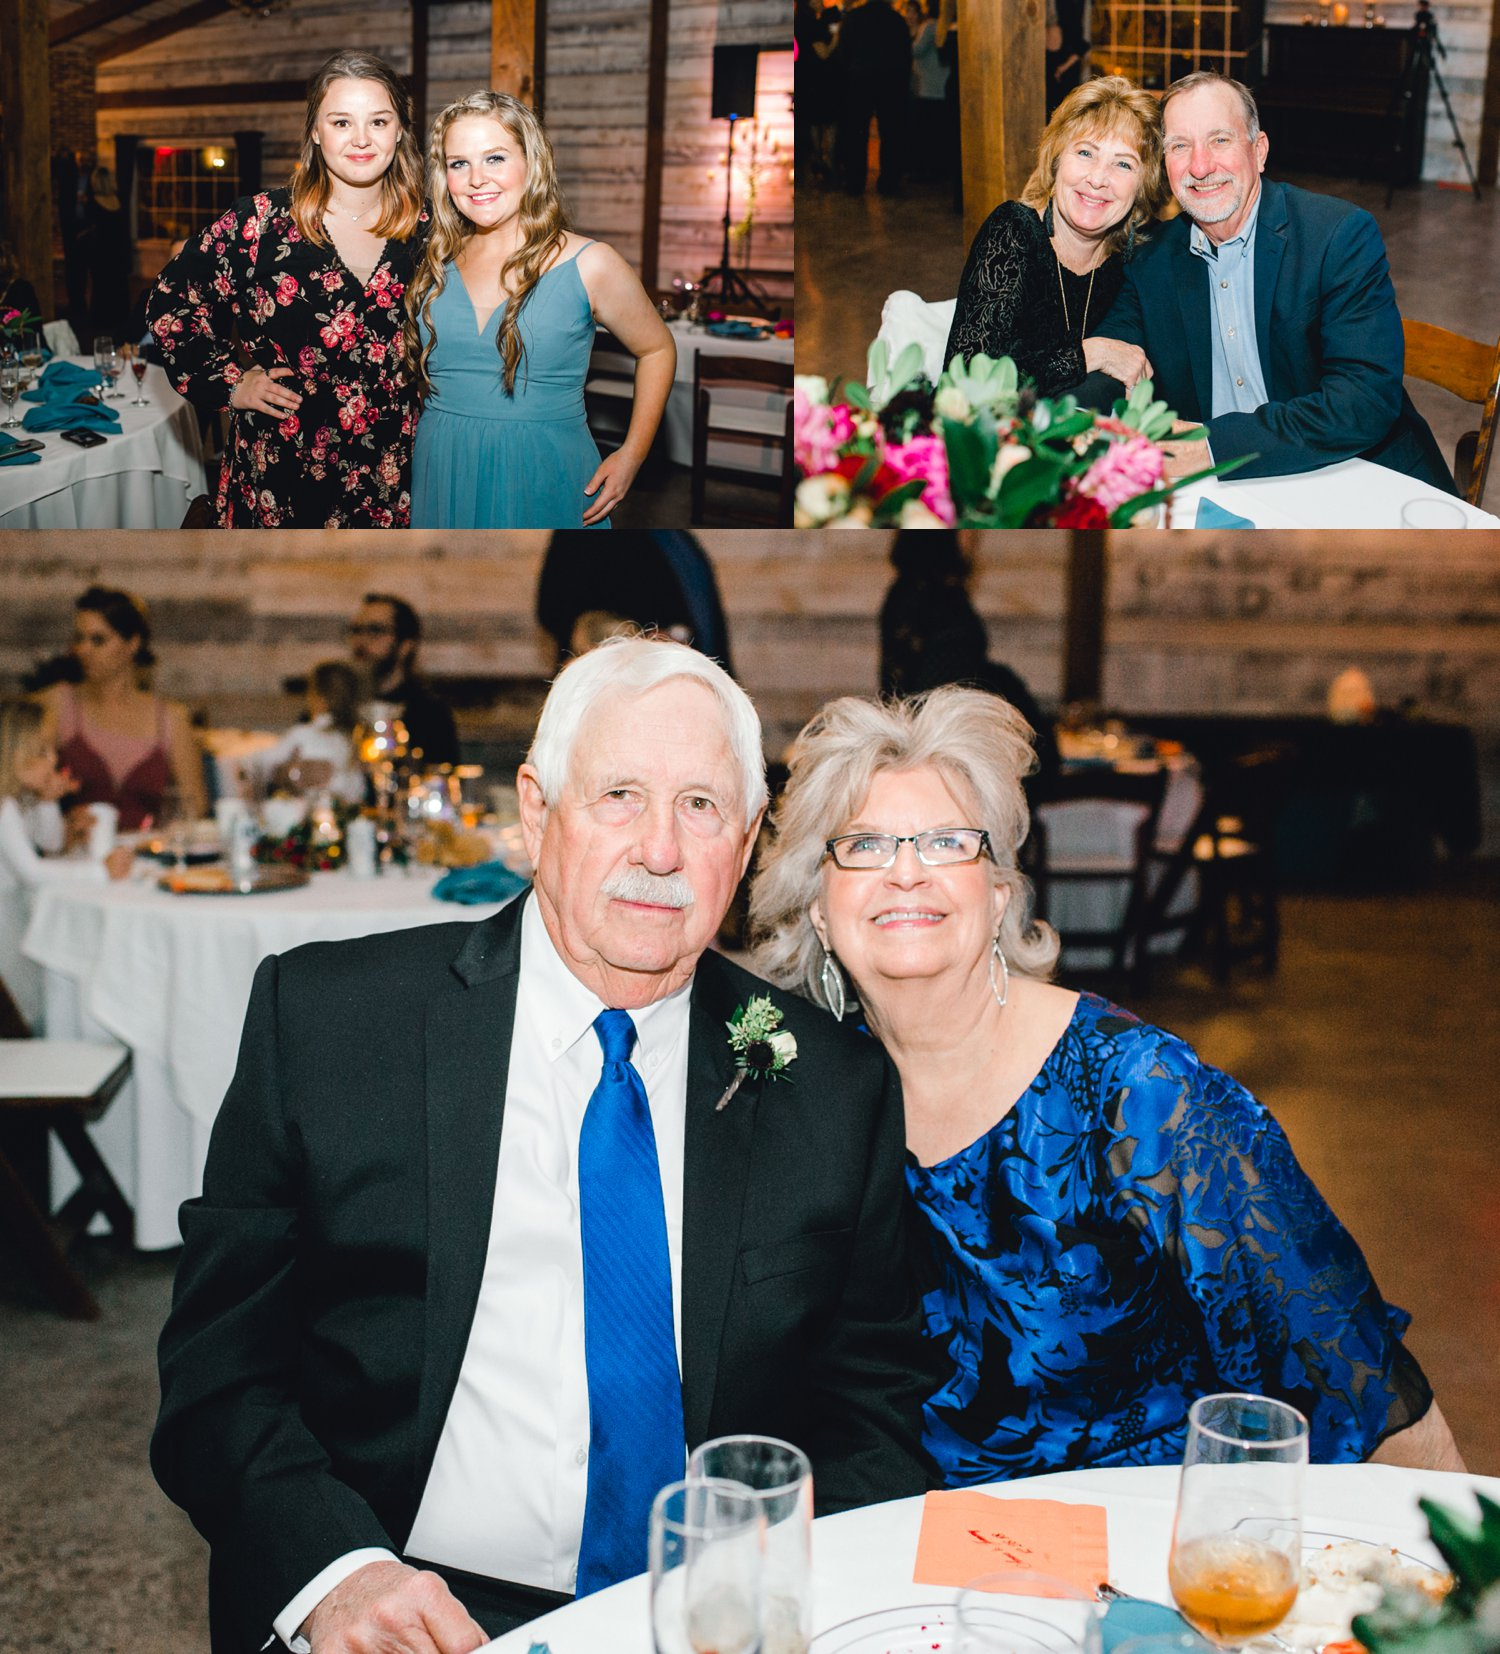 ANNIE_AND_JIMMY_MATTHEWS_EBERLEY_BROOKS_EVENTS_0149.jpg